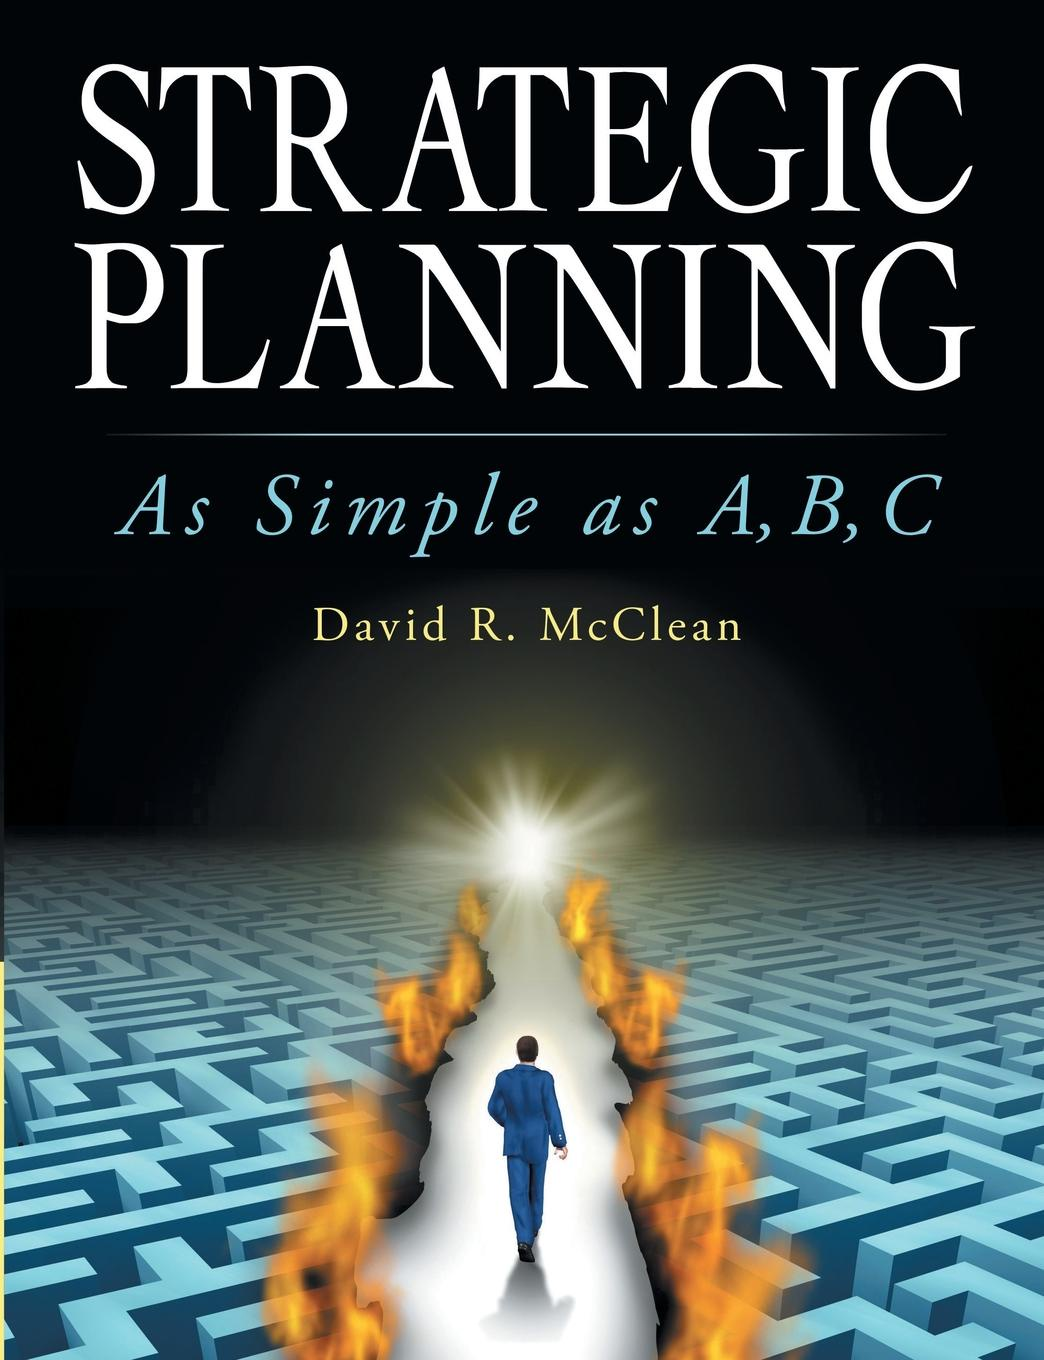 лучшая цена David R. McClean Strategic Planning. As Simple as A,B,C